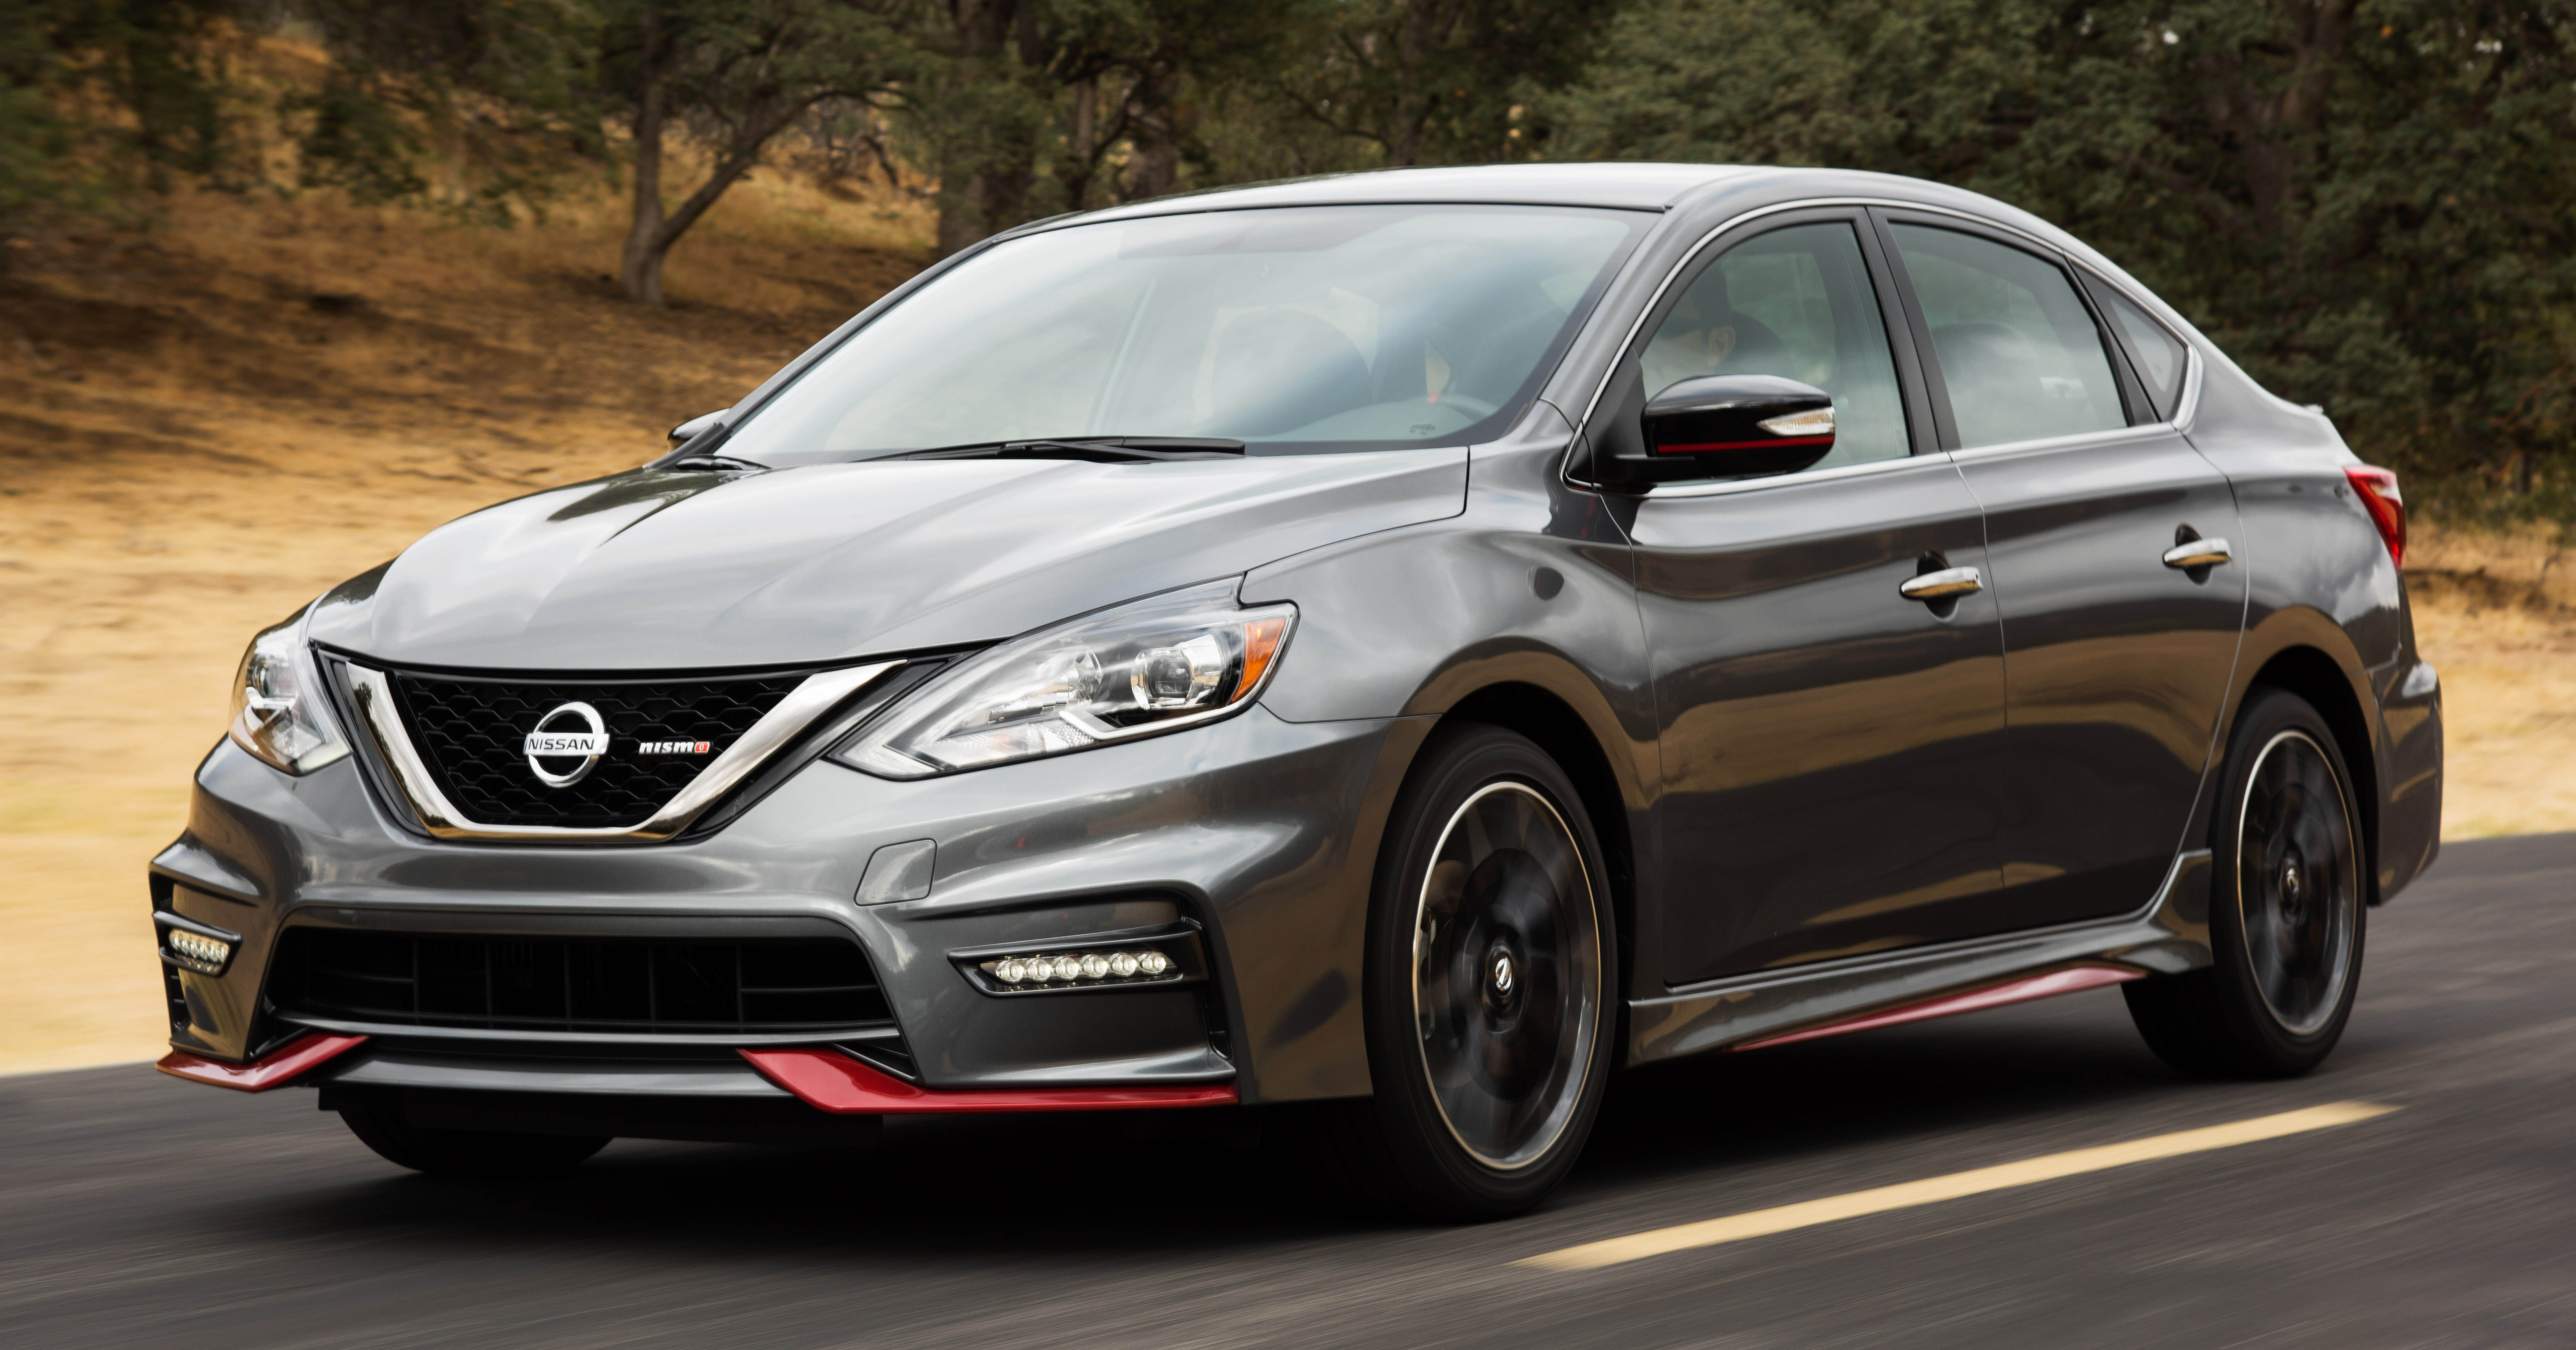 2017 nissan sentra nismo debuts a sportier sylphy image 580007. Black Bedroom Furniture Sets. Home Design Ideas